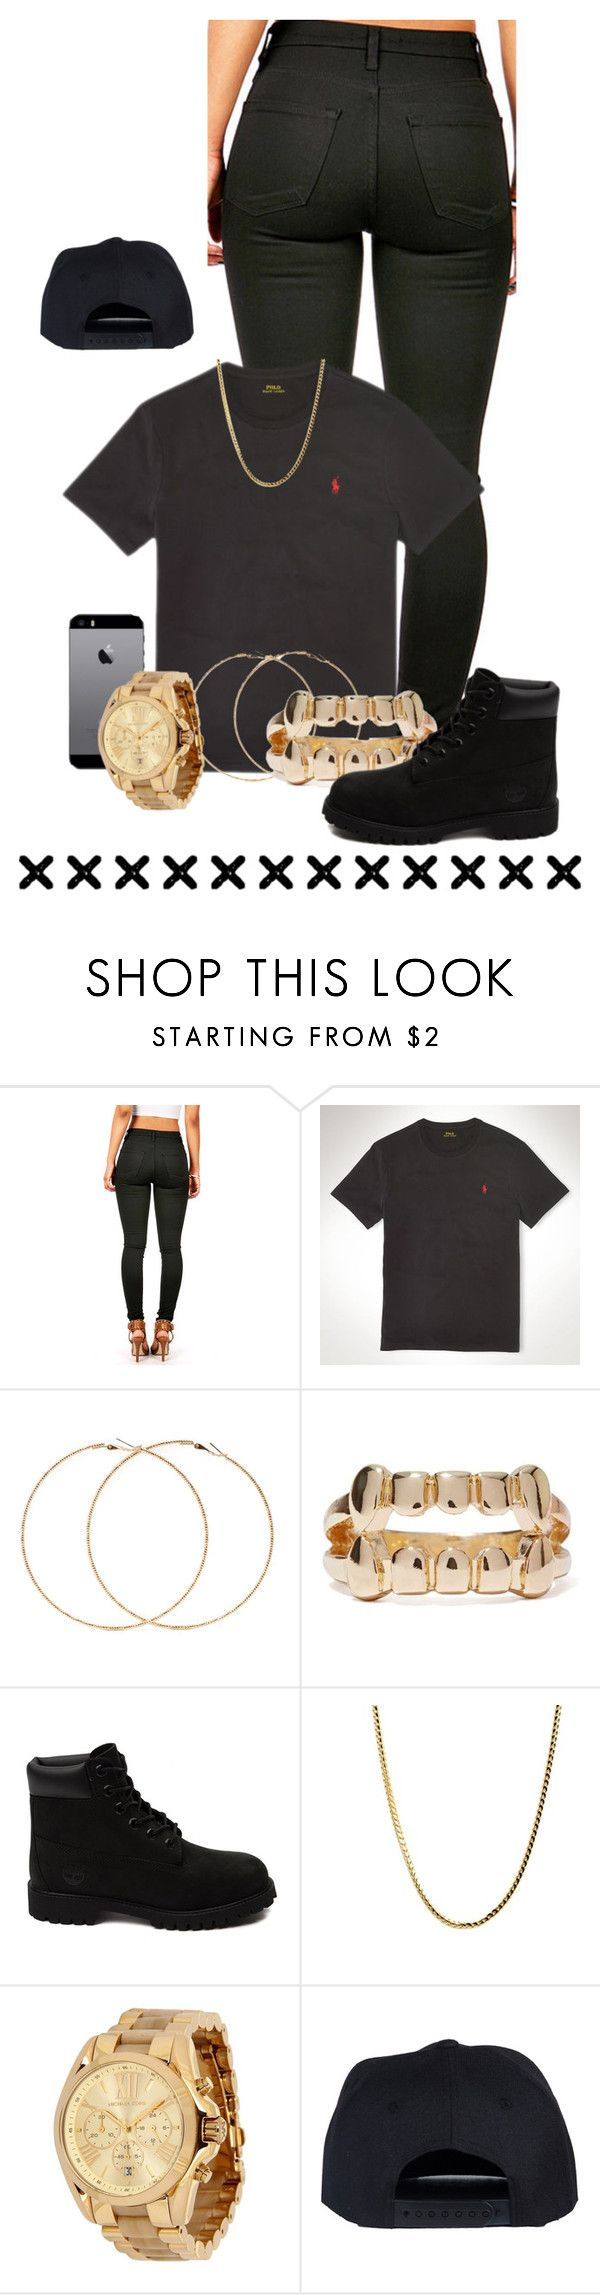 """All black , all day"" by laylay-023 ❤ liked on Polyvore featuring Polo Ralph Lauren, Samsung, Forever 21, Timberland, Michael Kors, women's clothing, women, female, woman and misses"